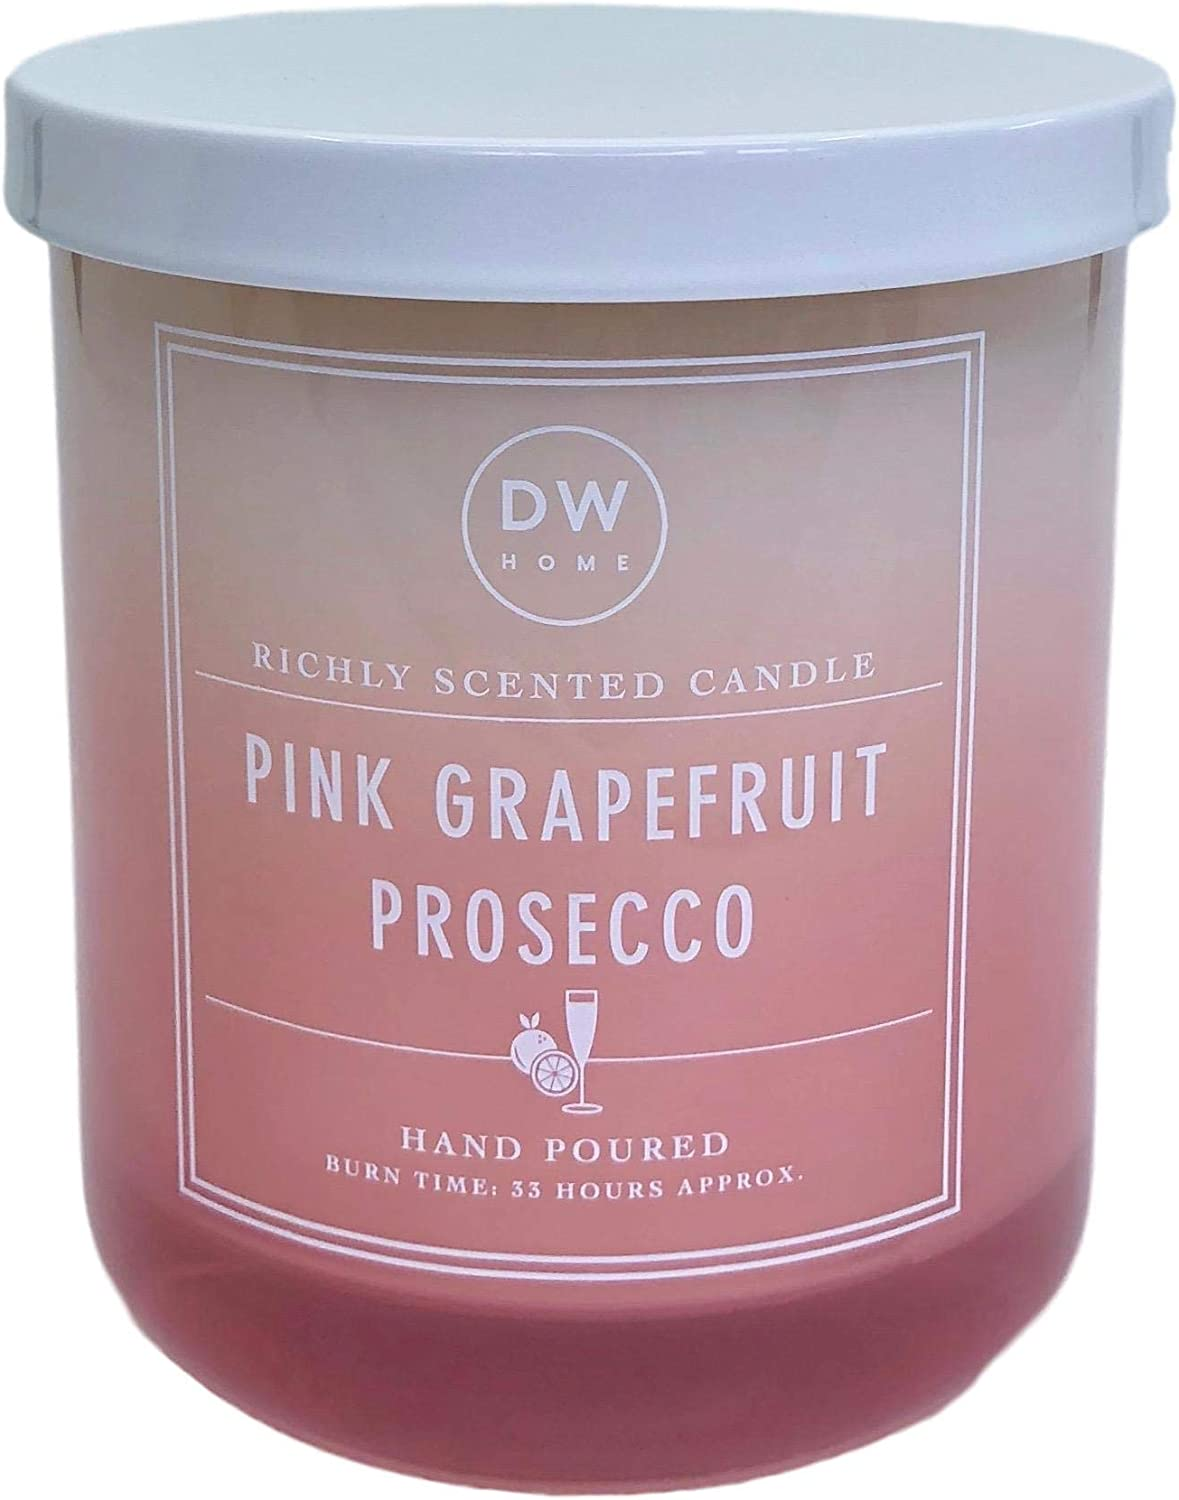 DW Home Pink Grapefruit Prosecco Scented Candle